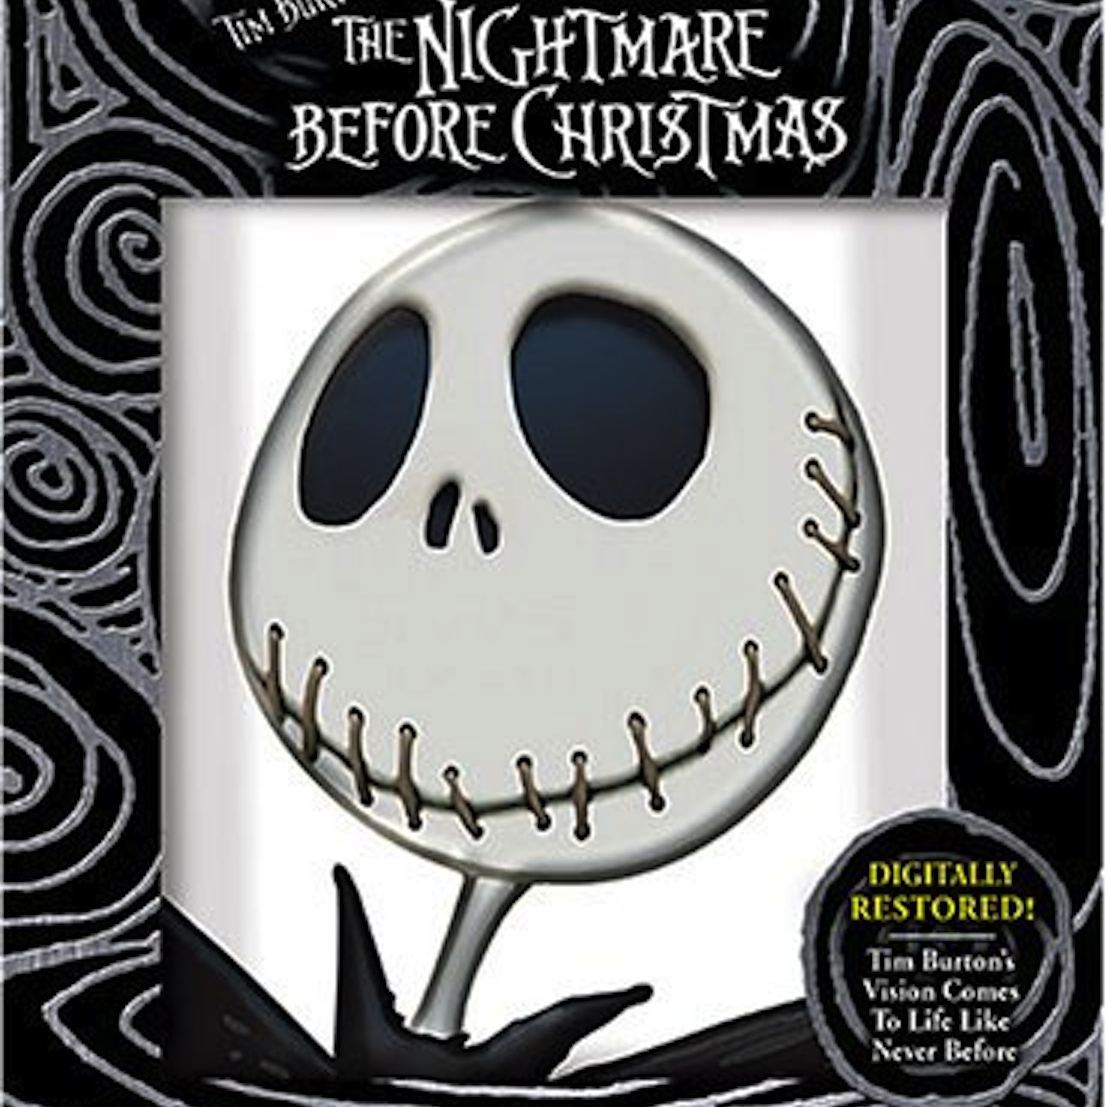 Top 10 Halloween Movies for Middle School Kids